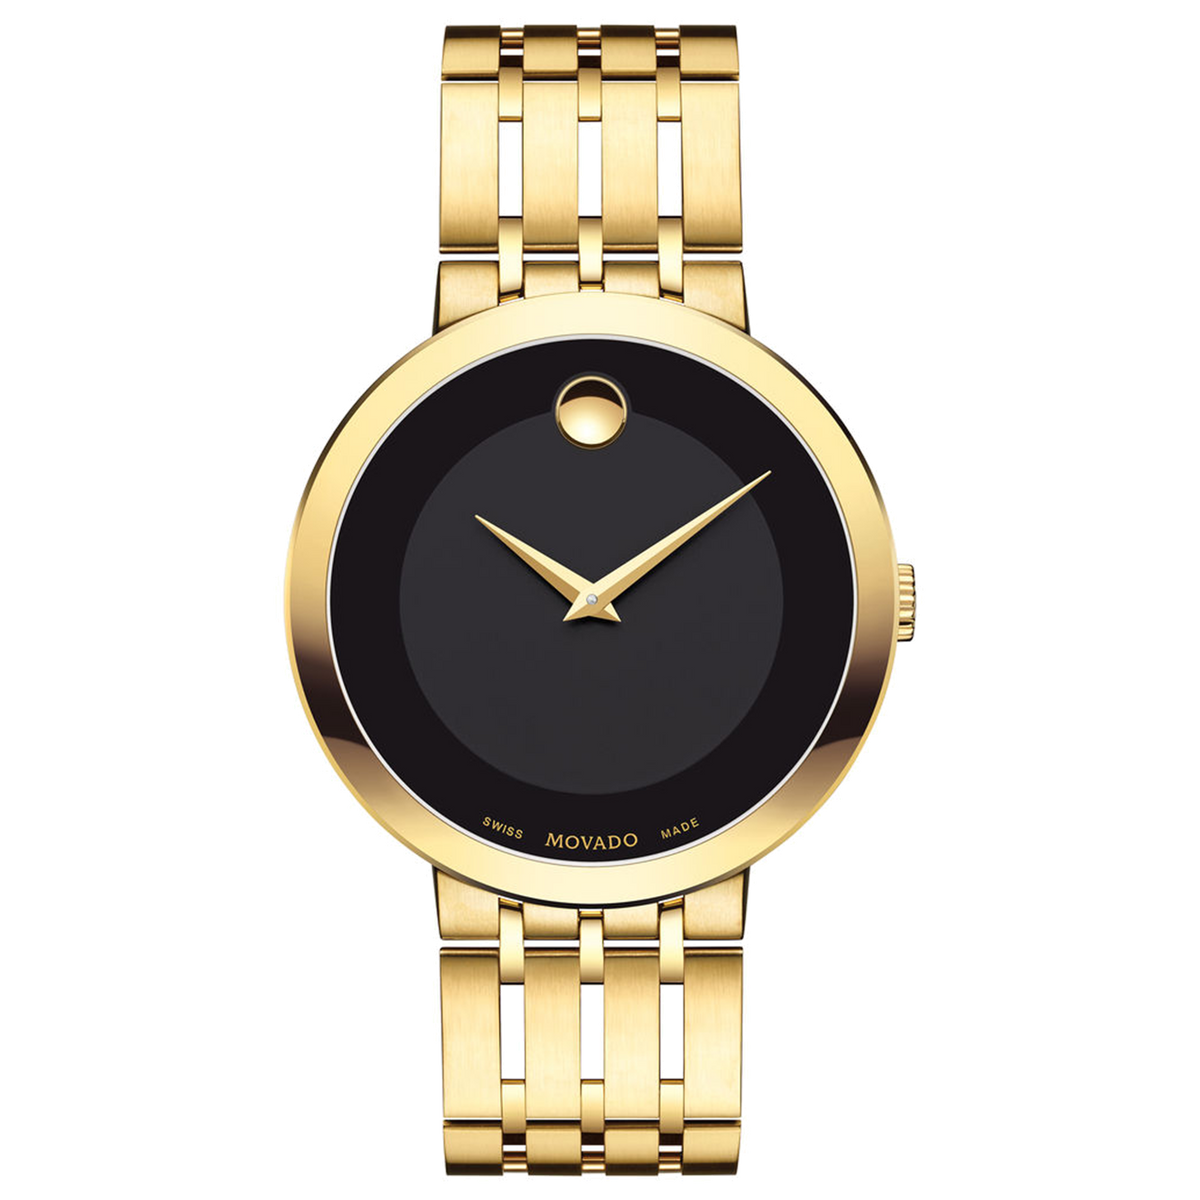 Movado Watch Esperanza Collection - 39mm Gold PVD